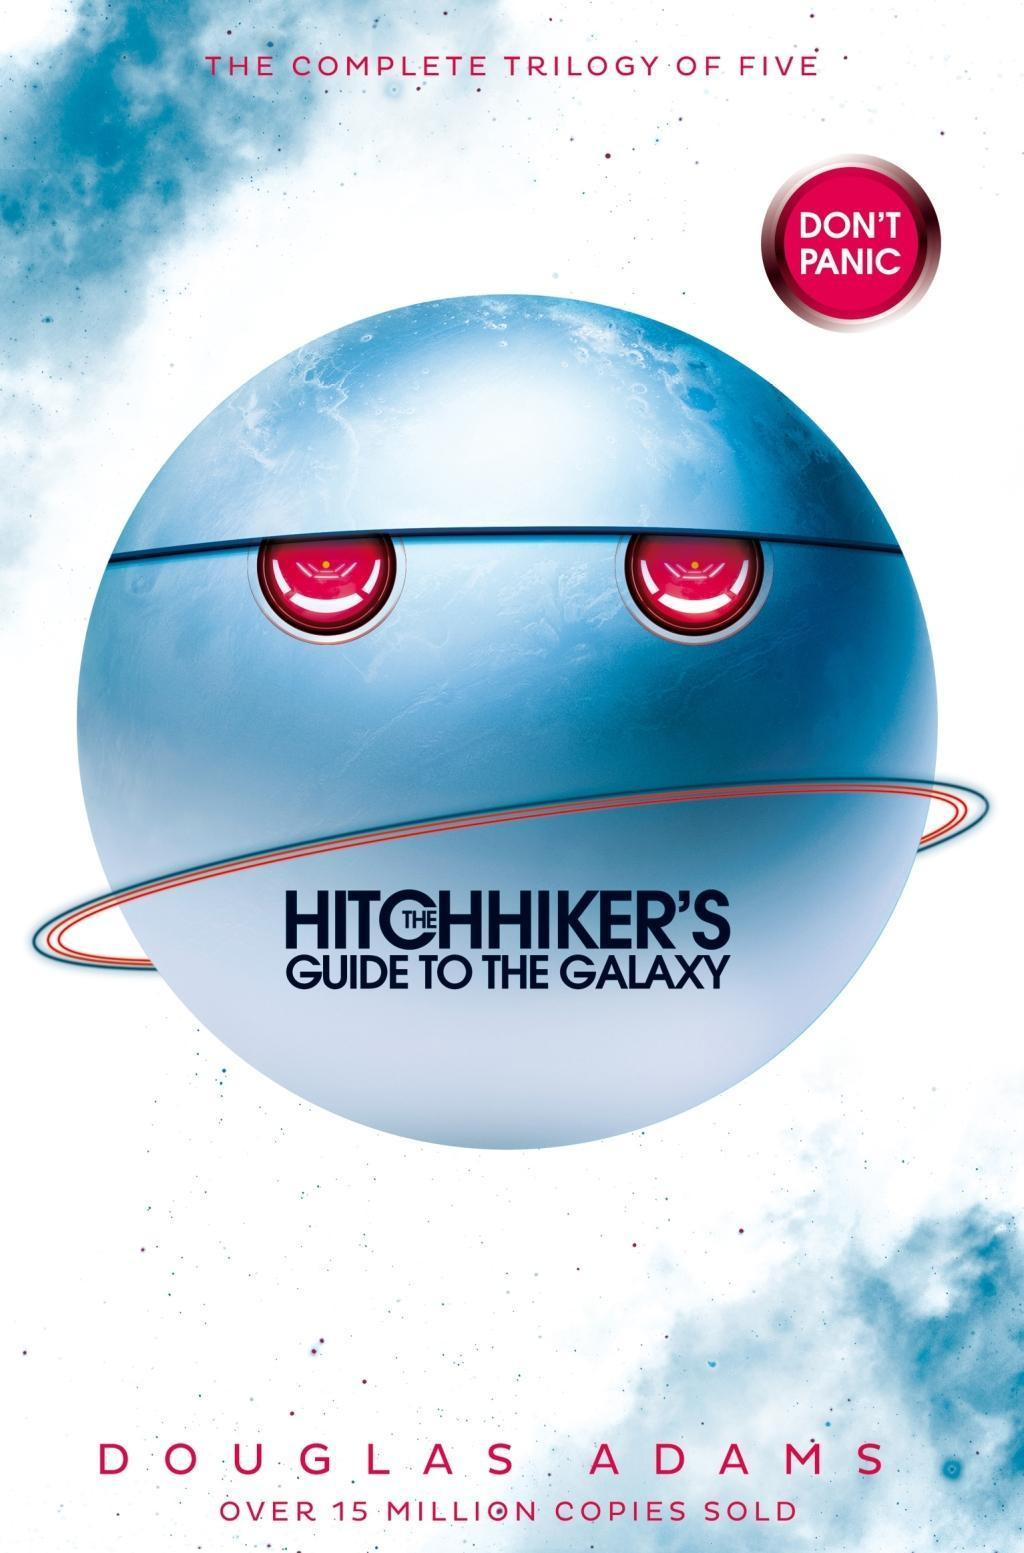 The Hitchhiker's Guide to the Galaxy OmnibusA Trilogy in Five Parts